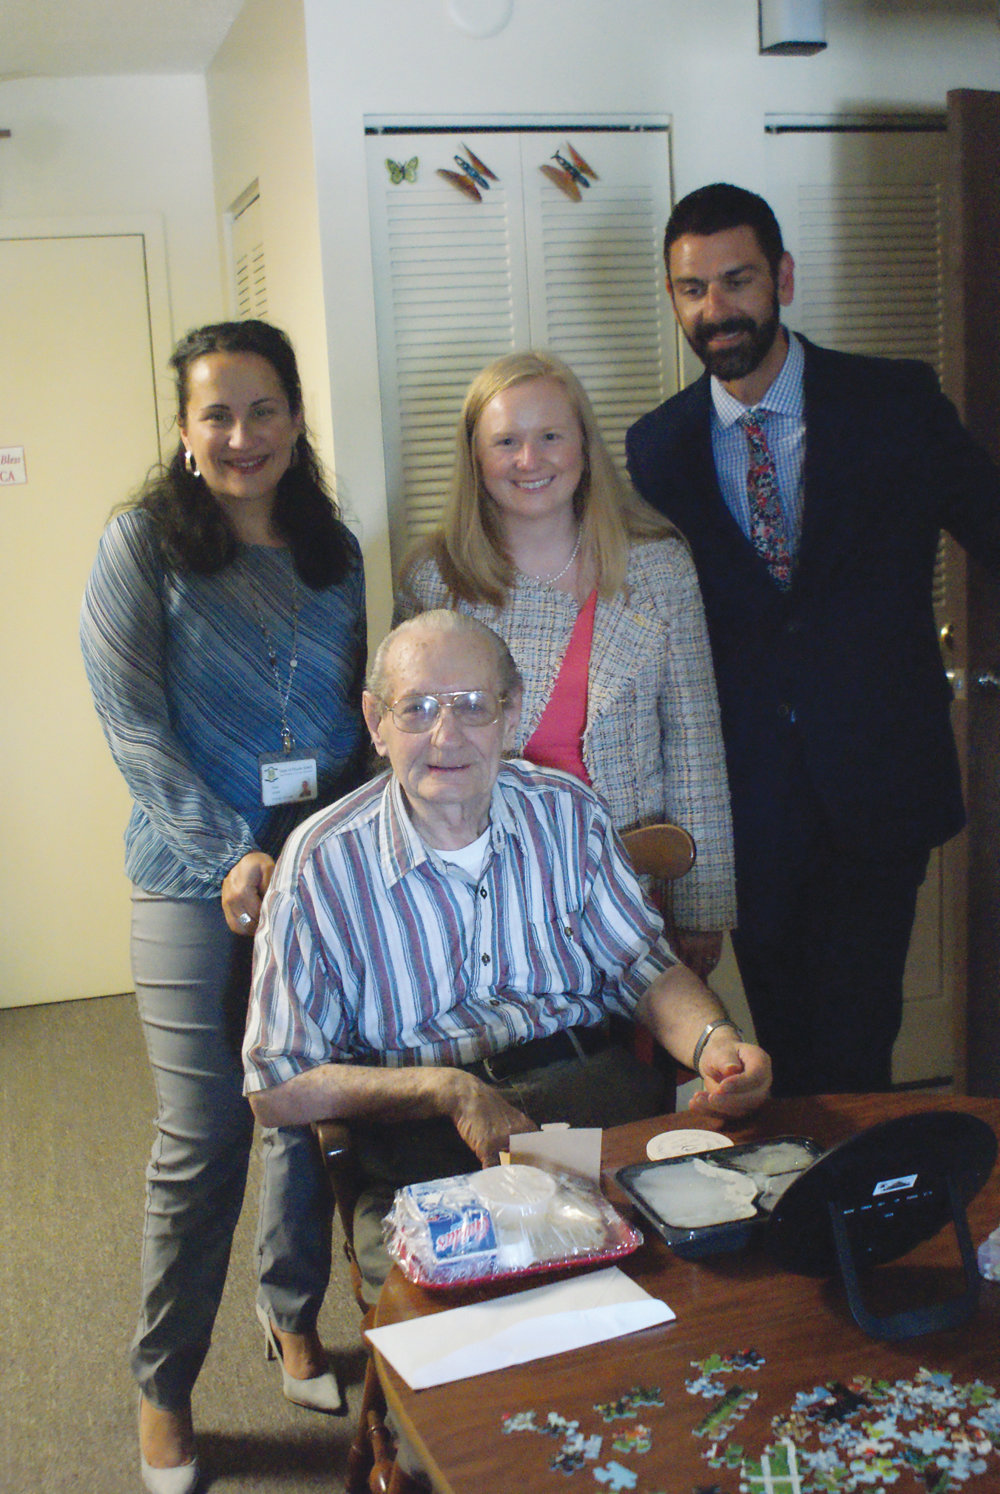 SPECIAL DELIVERY: Receiving the 19-millionth meal from Meals on Wheels of Rhode Island during a recent visit was 88-year-old Joseph Brisson of Cranston. He is pictured along with Rose Amoros Jones from the state's Office of Healthy Aging and Meghan Grady and Kevin Millonzi from Meals on Wheels.